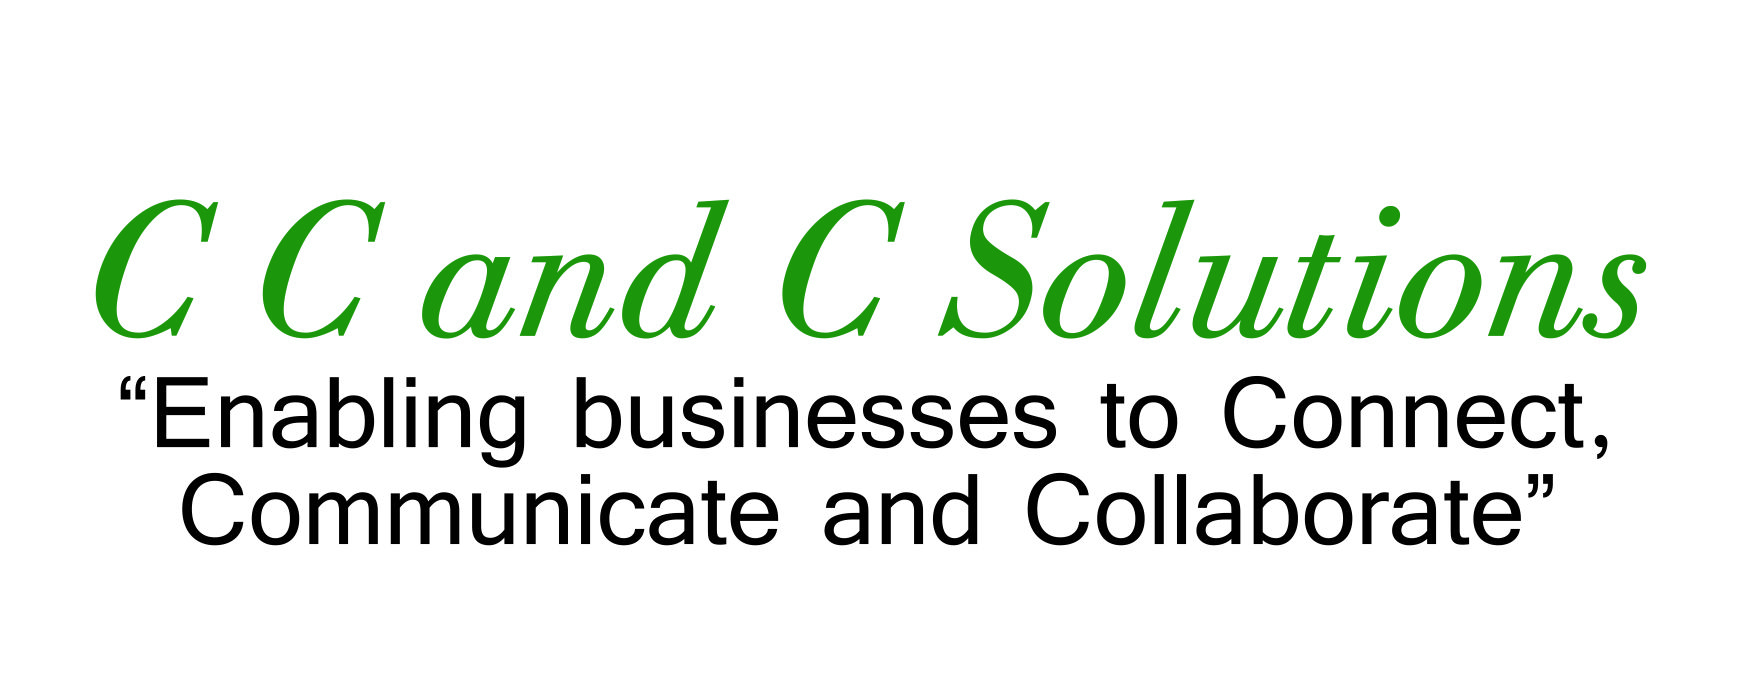 CC and C Solutions Logo